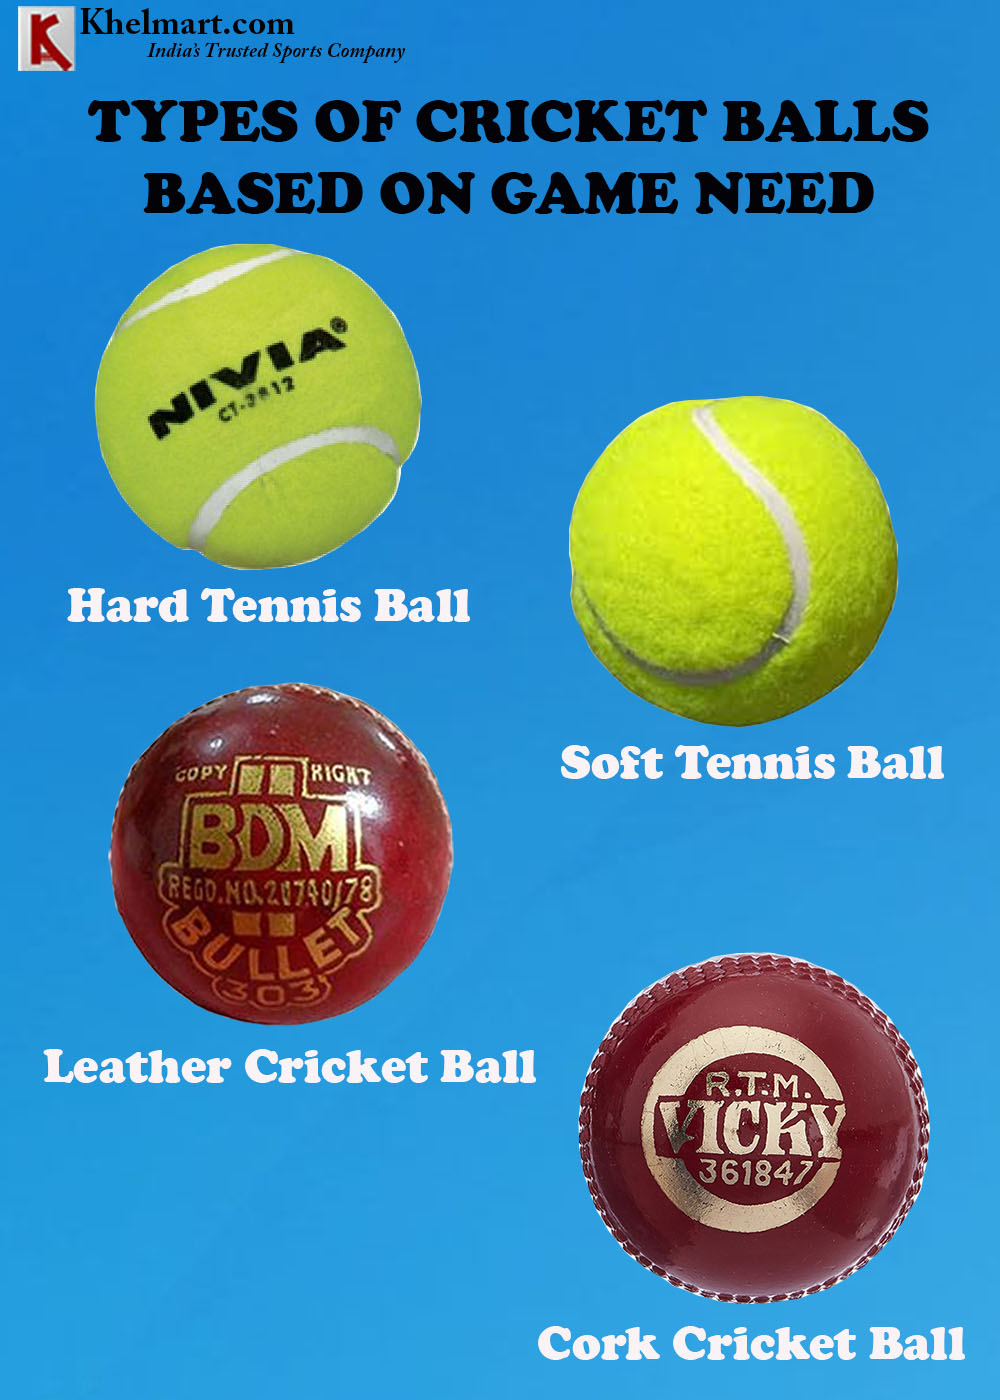 Types of Cricket Balls Based On Game Need